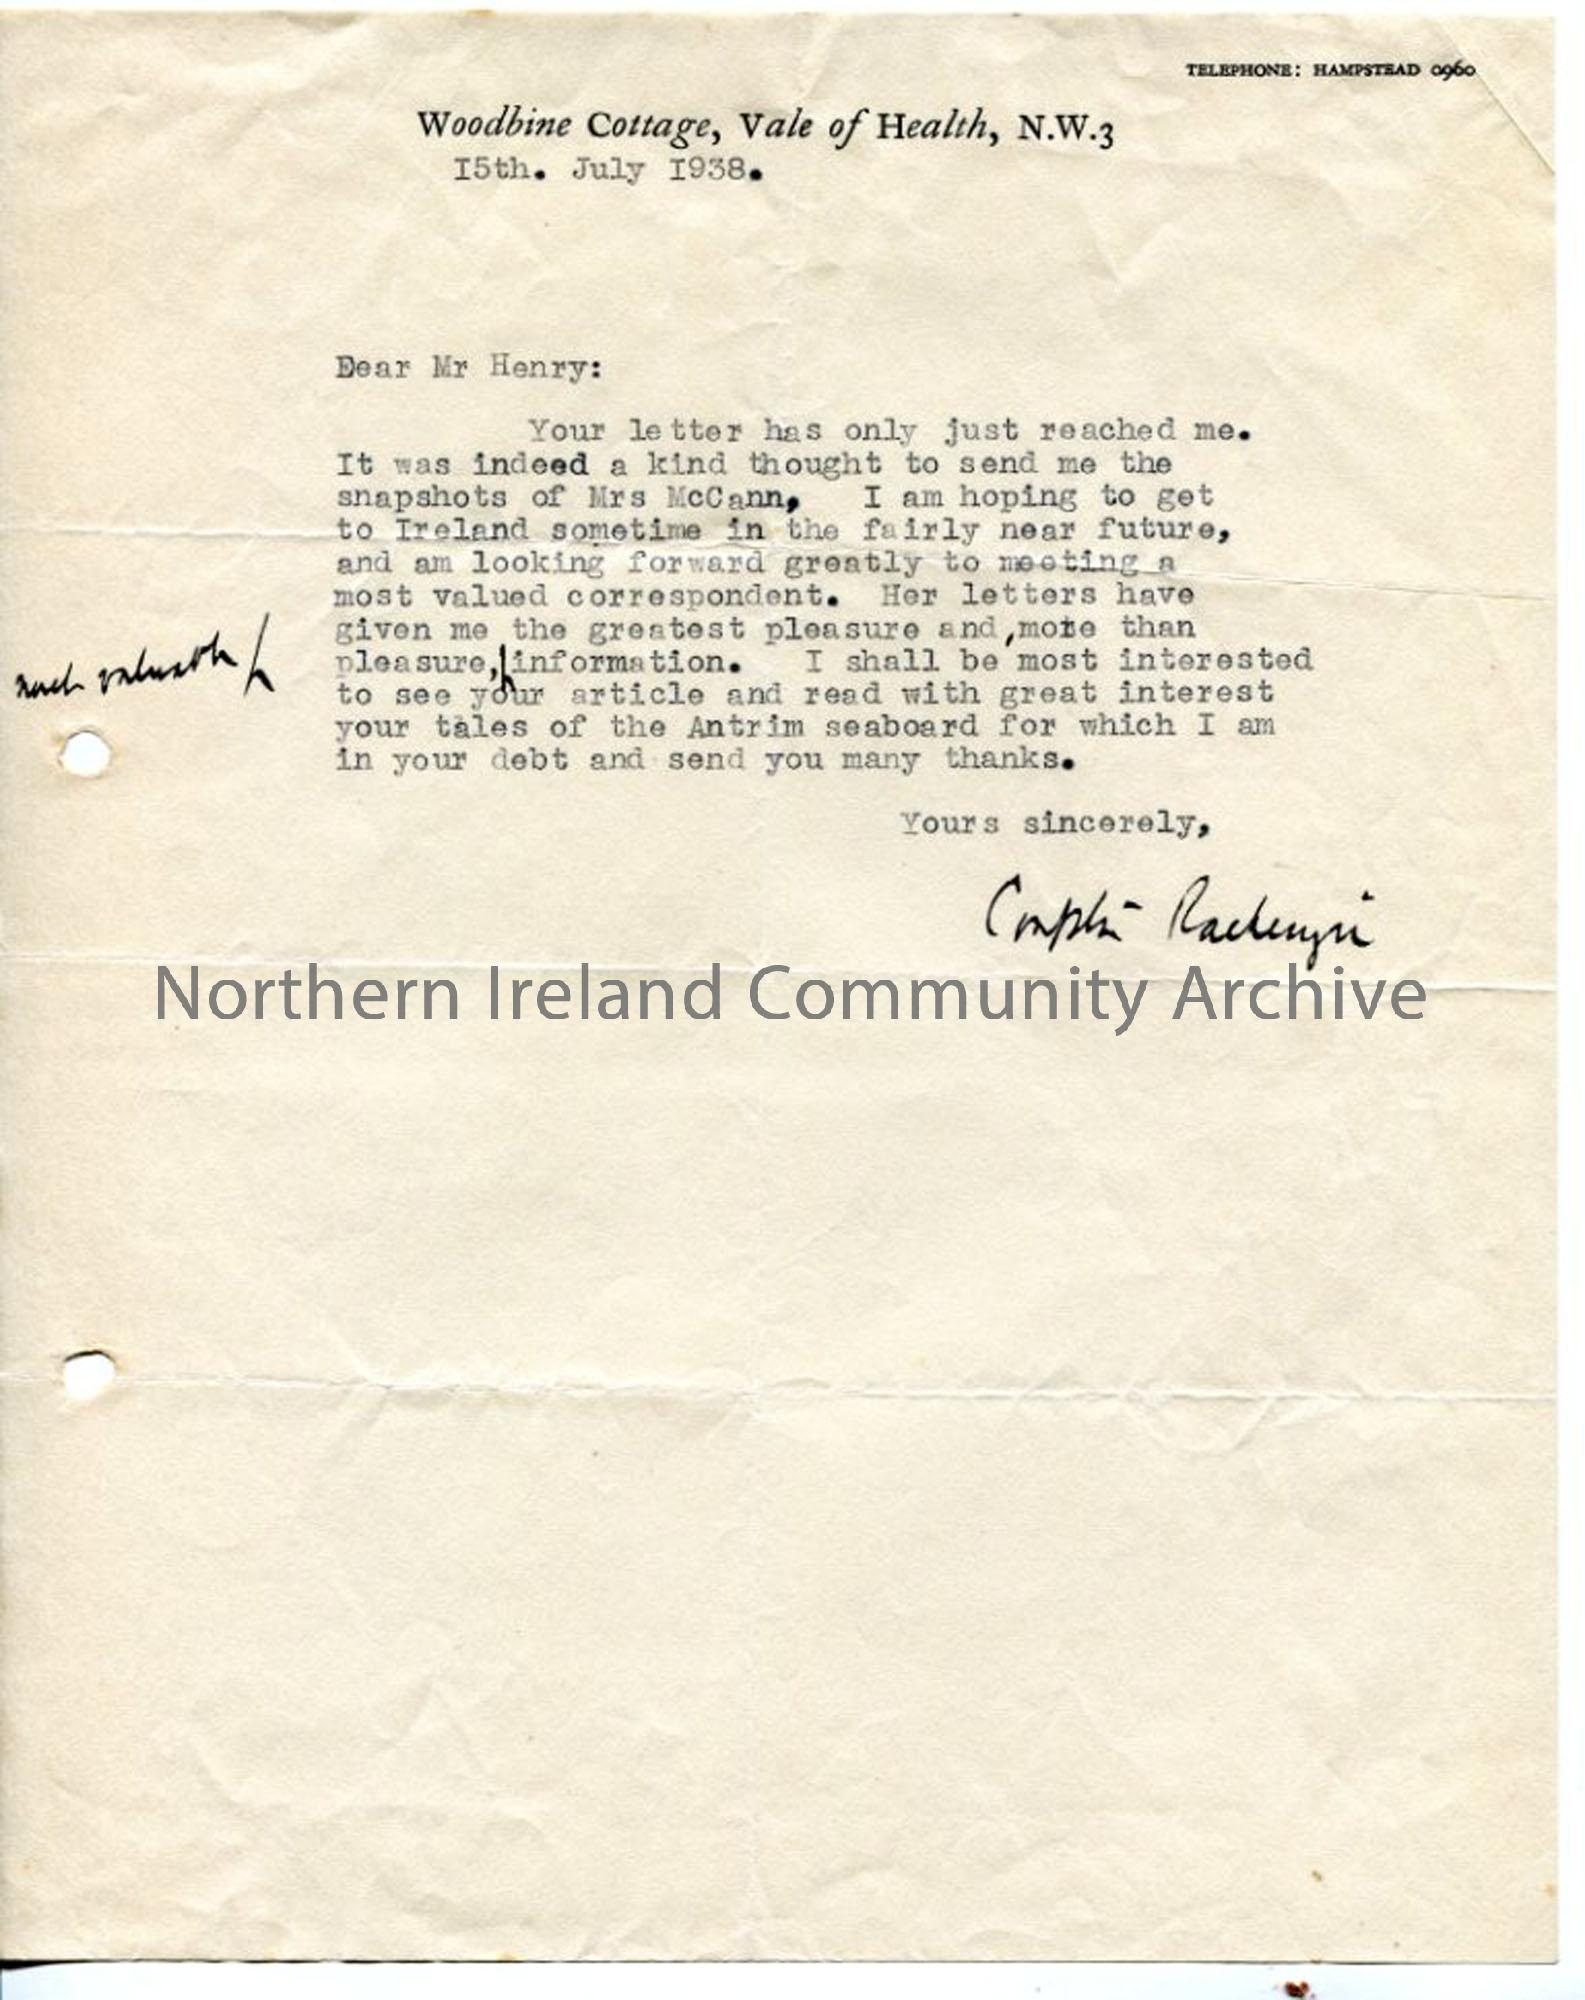 Typed letter from Compton Mackenzie